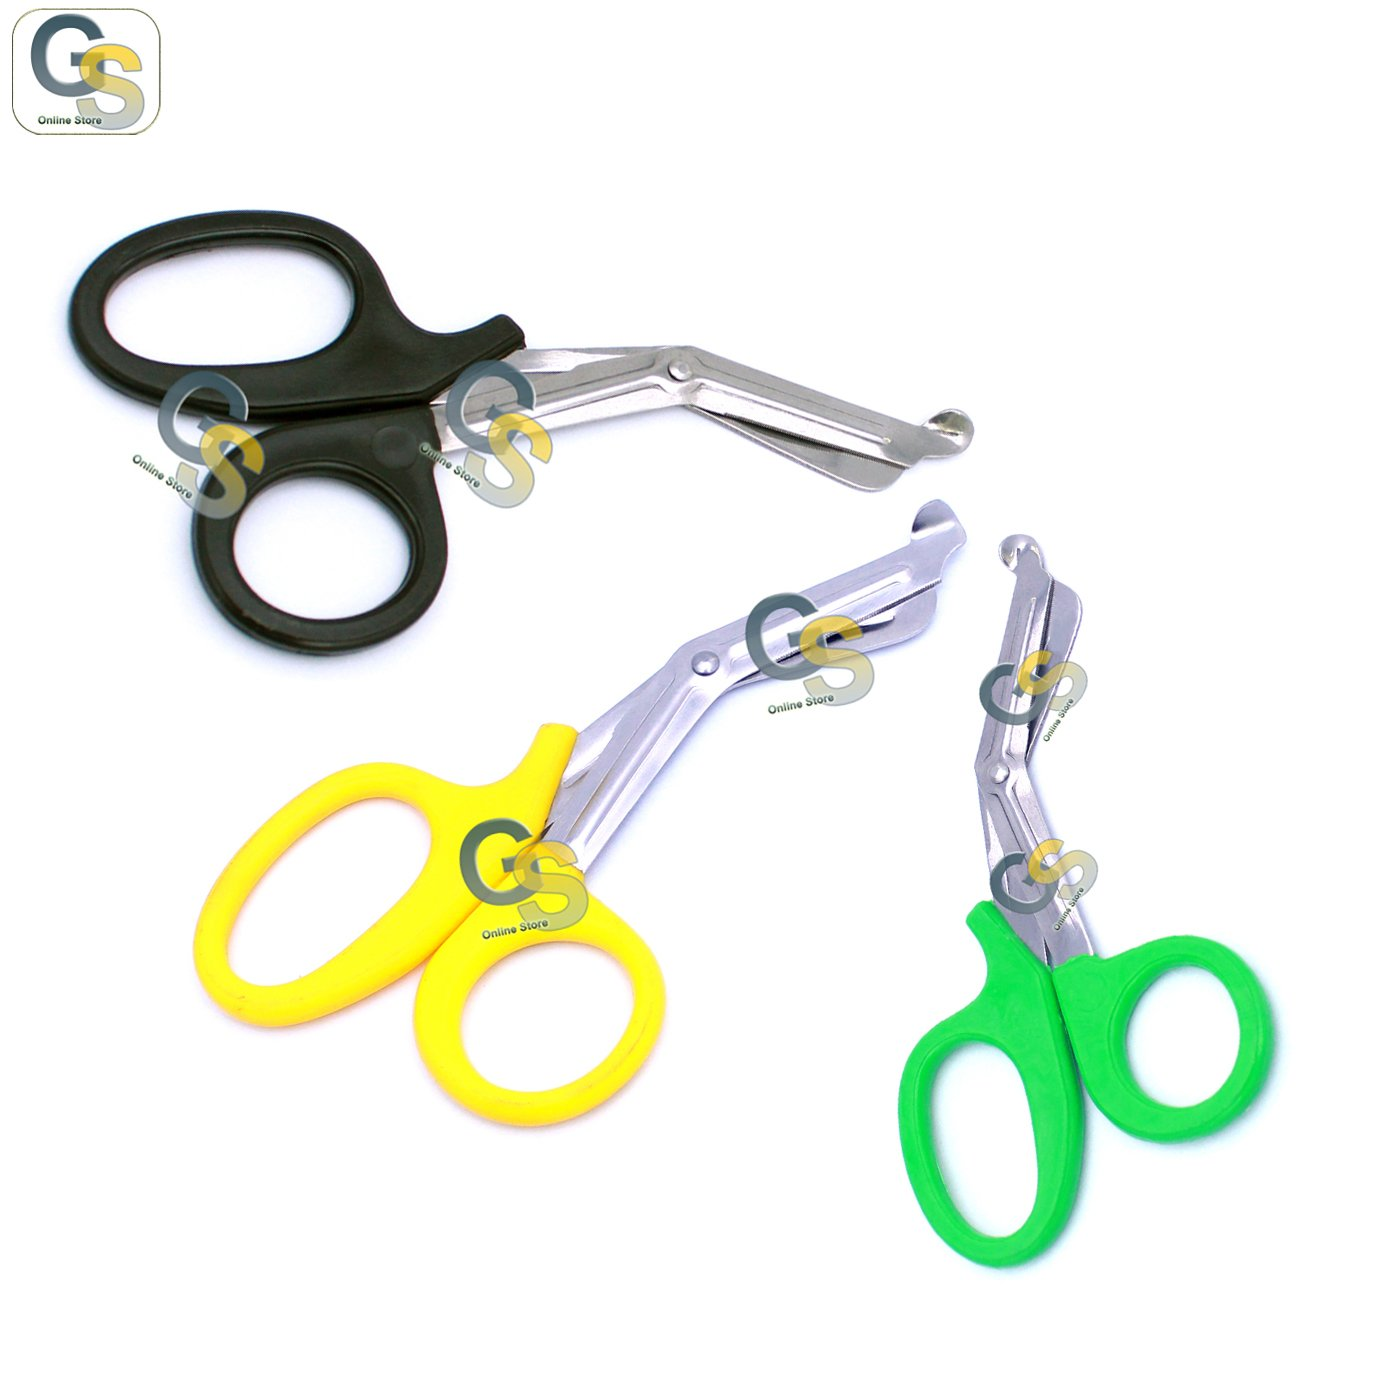 G.S 3 PCS (BLACK & YELLOW & GREEN) PARAMEDIC UTILITY BANDAGE TRAUMA EMT EMS SHEARS SCISSORS 7.25 INCH STAINLESS STEEL